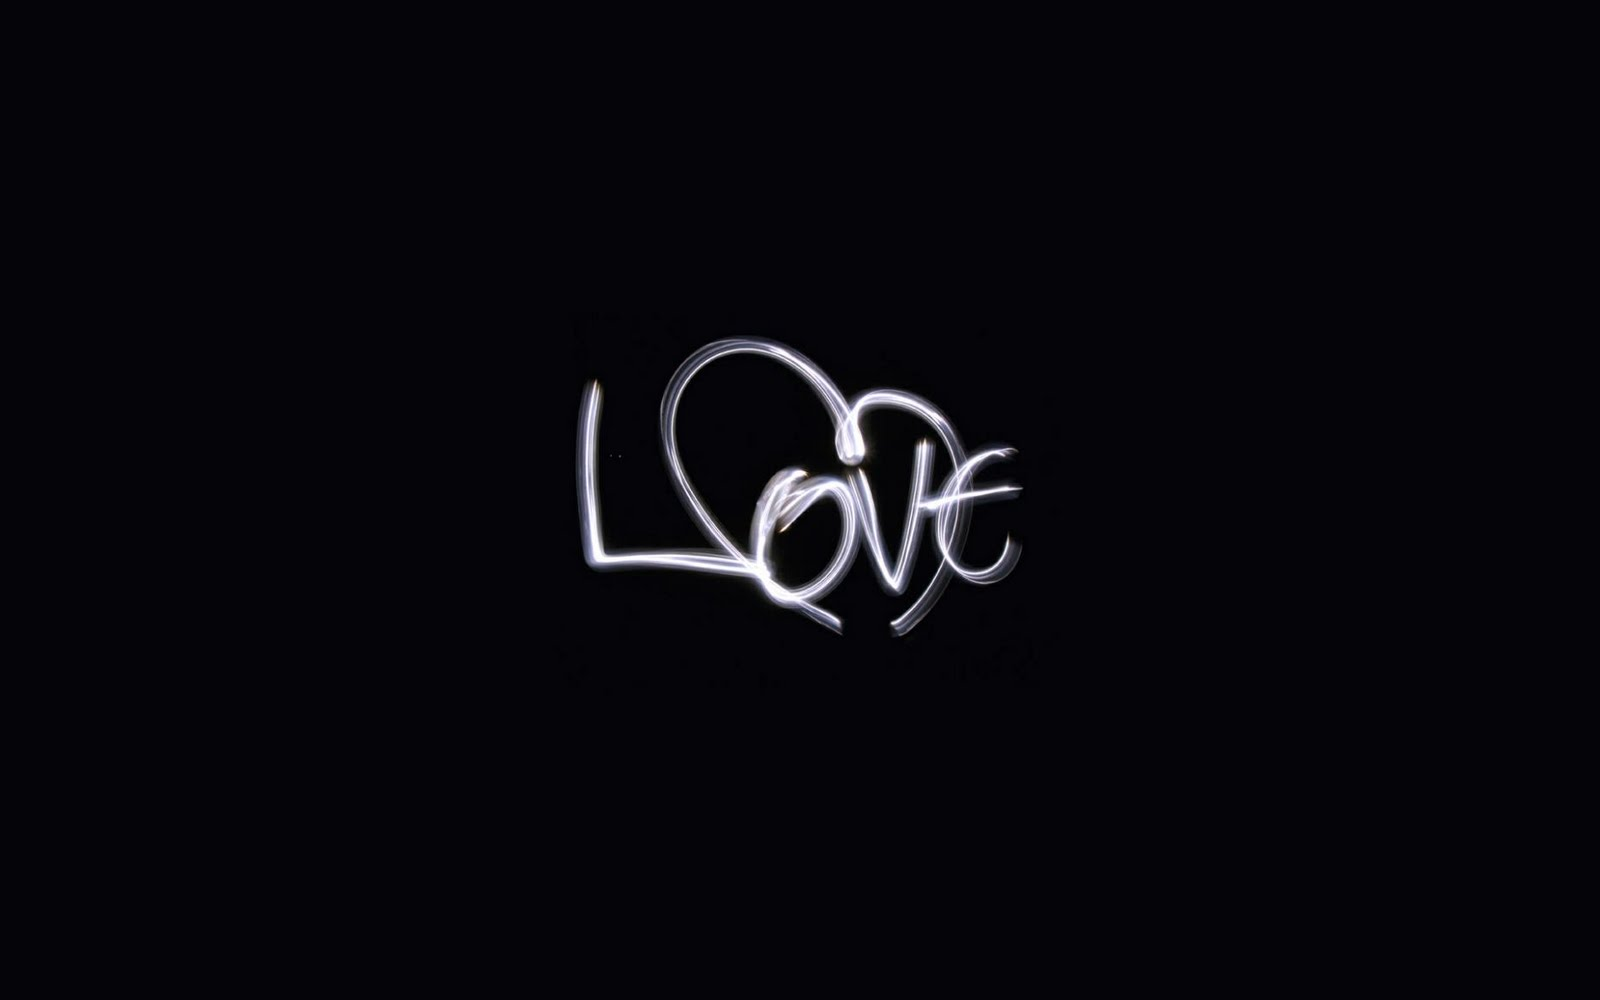 Love Wallpapers Top : LOVE HD WALLPAPER Top HD Wallpapers